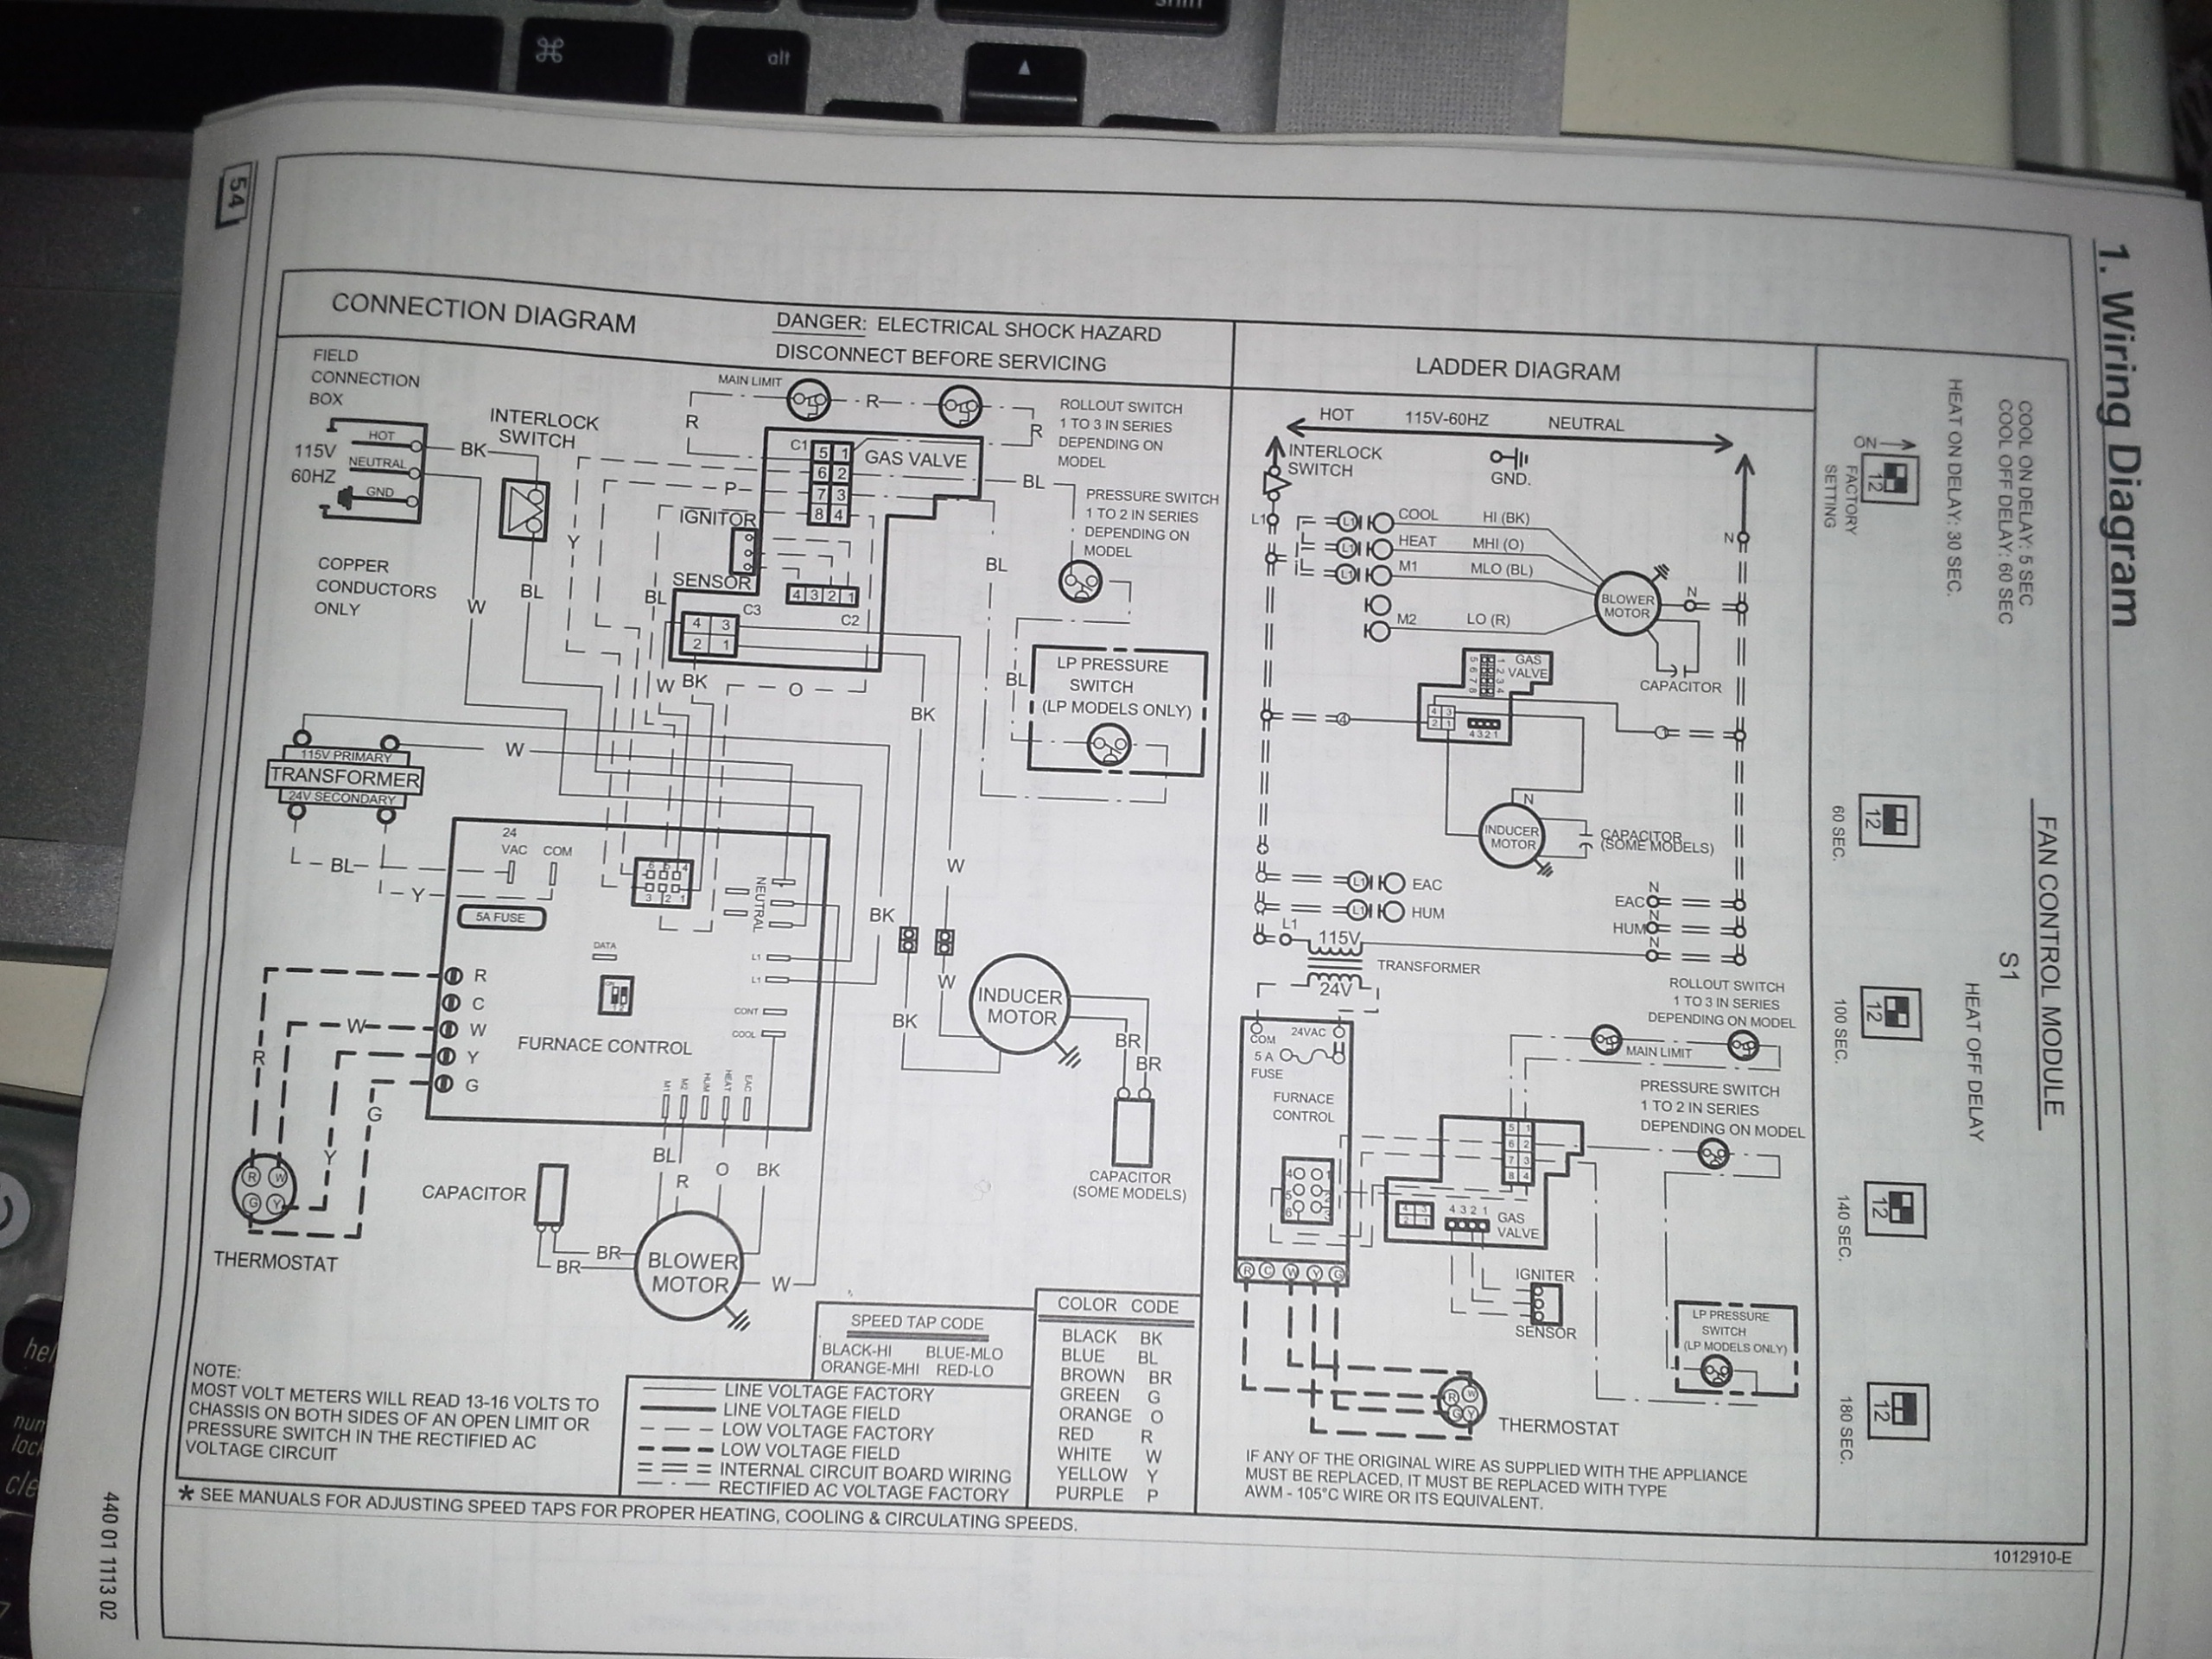 Heil Thermostat Model # Haxc004tw01 Wiring Diagram on